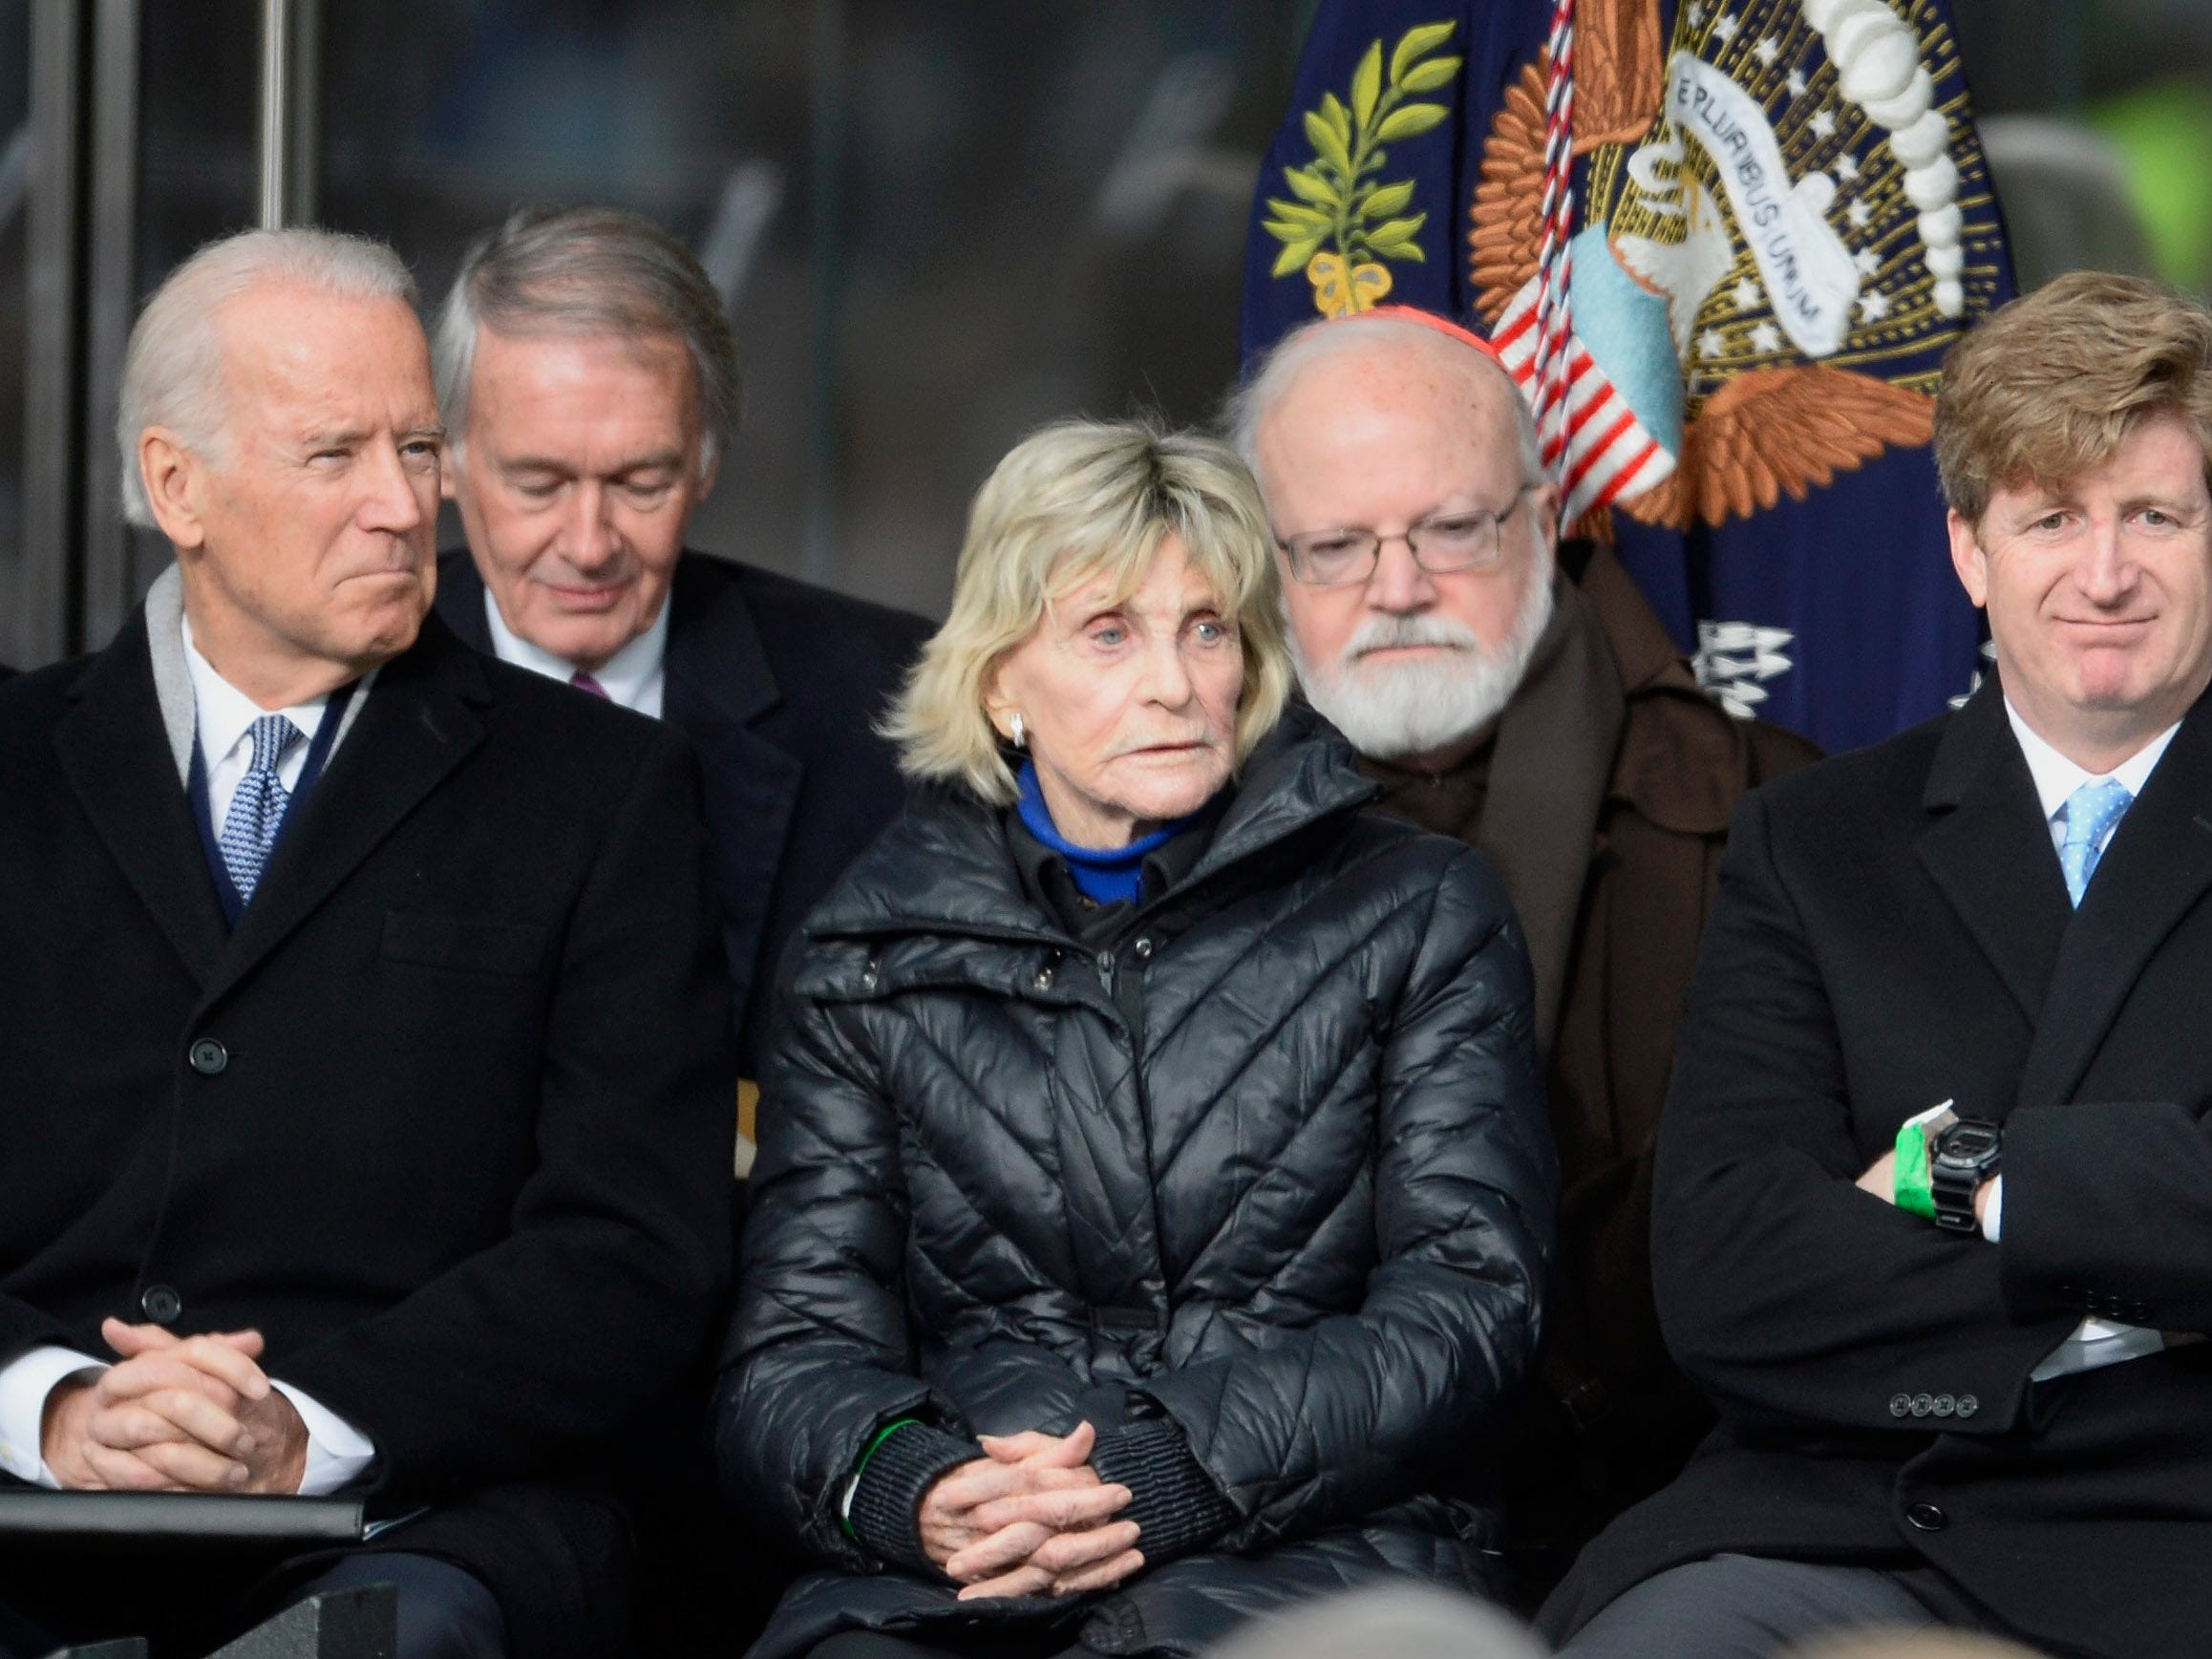 epa04686707 (L-R front row) US Vice President Joe Biden, Jean Kennedy Smith, Patrick Kennedy, and Republican Senator John McCain sit together at the start of the dedication ceremony of the Edward M. Kennedy Institute for the United States Senate in Boston, Massachusetts, USA, 30 March 2015. The institute, which is envisioned as a way to inform the public about the role of the United States Senate, opens to the public on 31 March 2015.  EPA/CJ GUNTHER ORG XMIT: JLX01